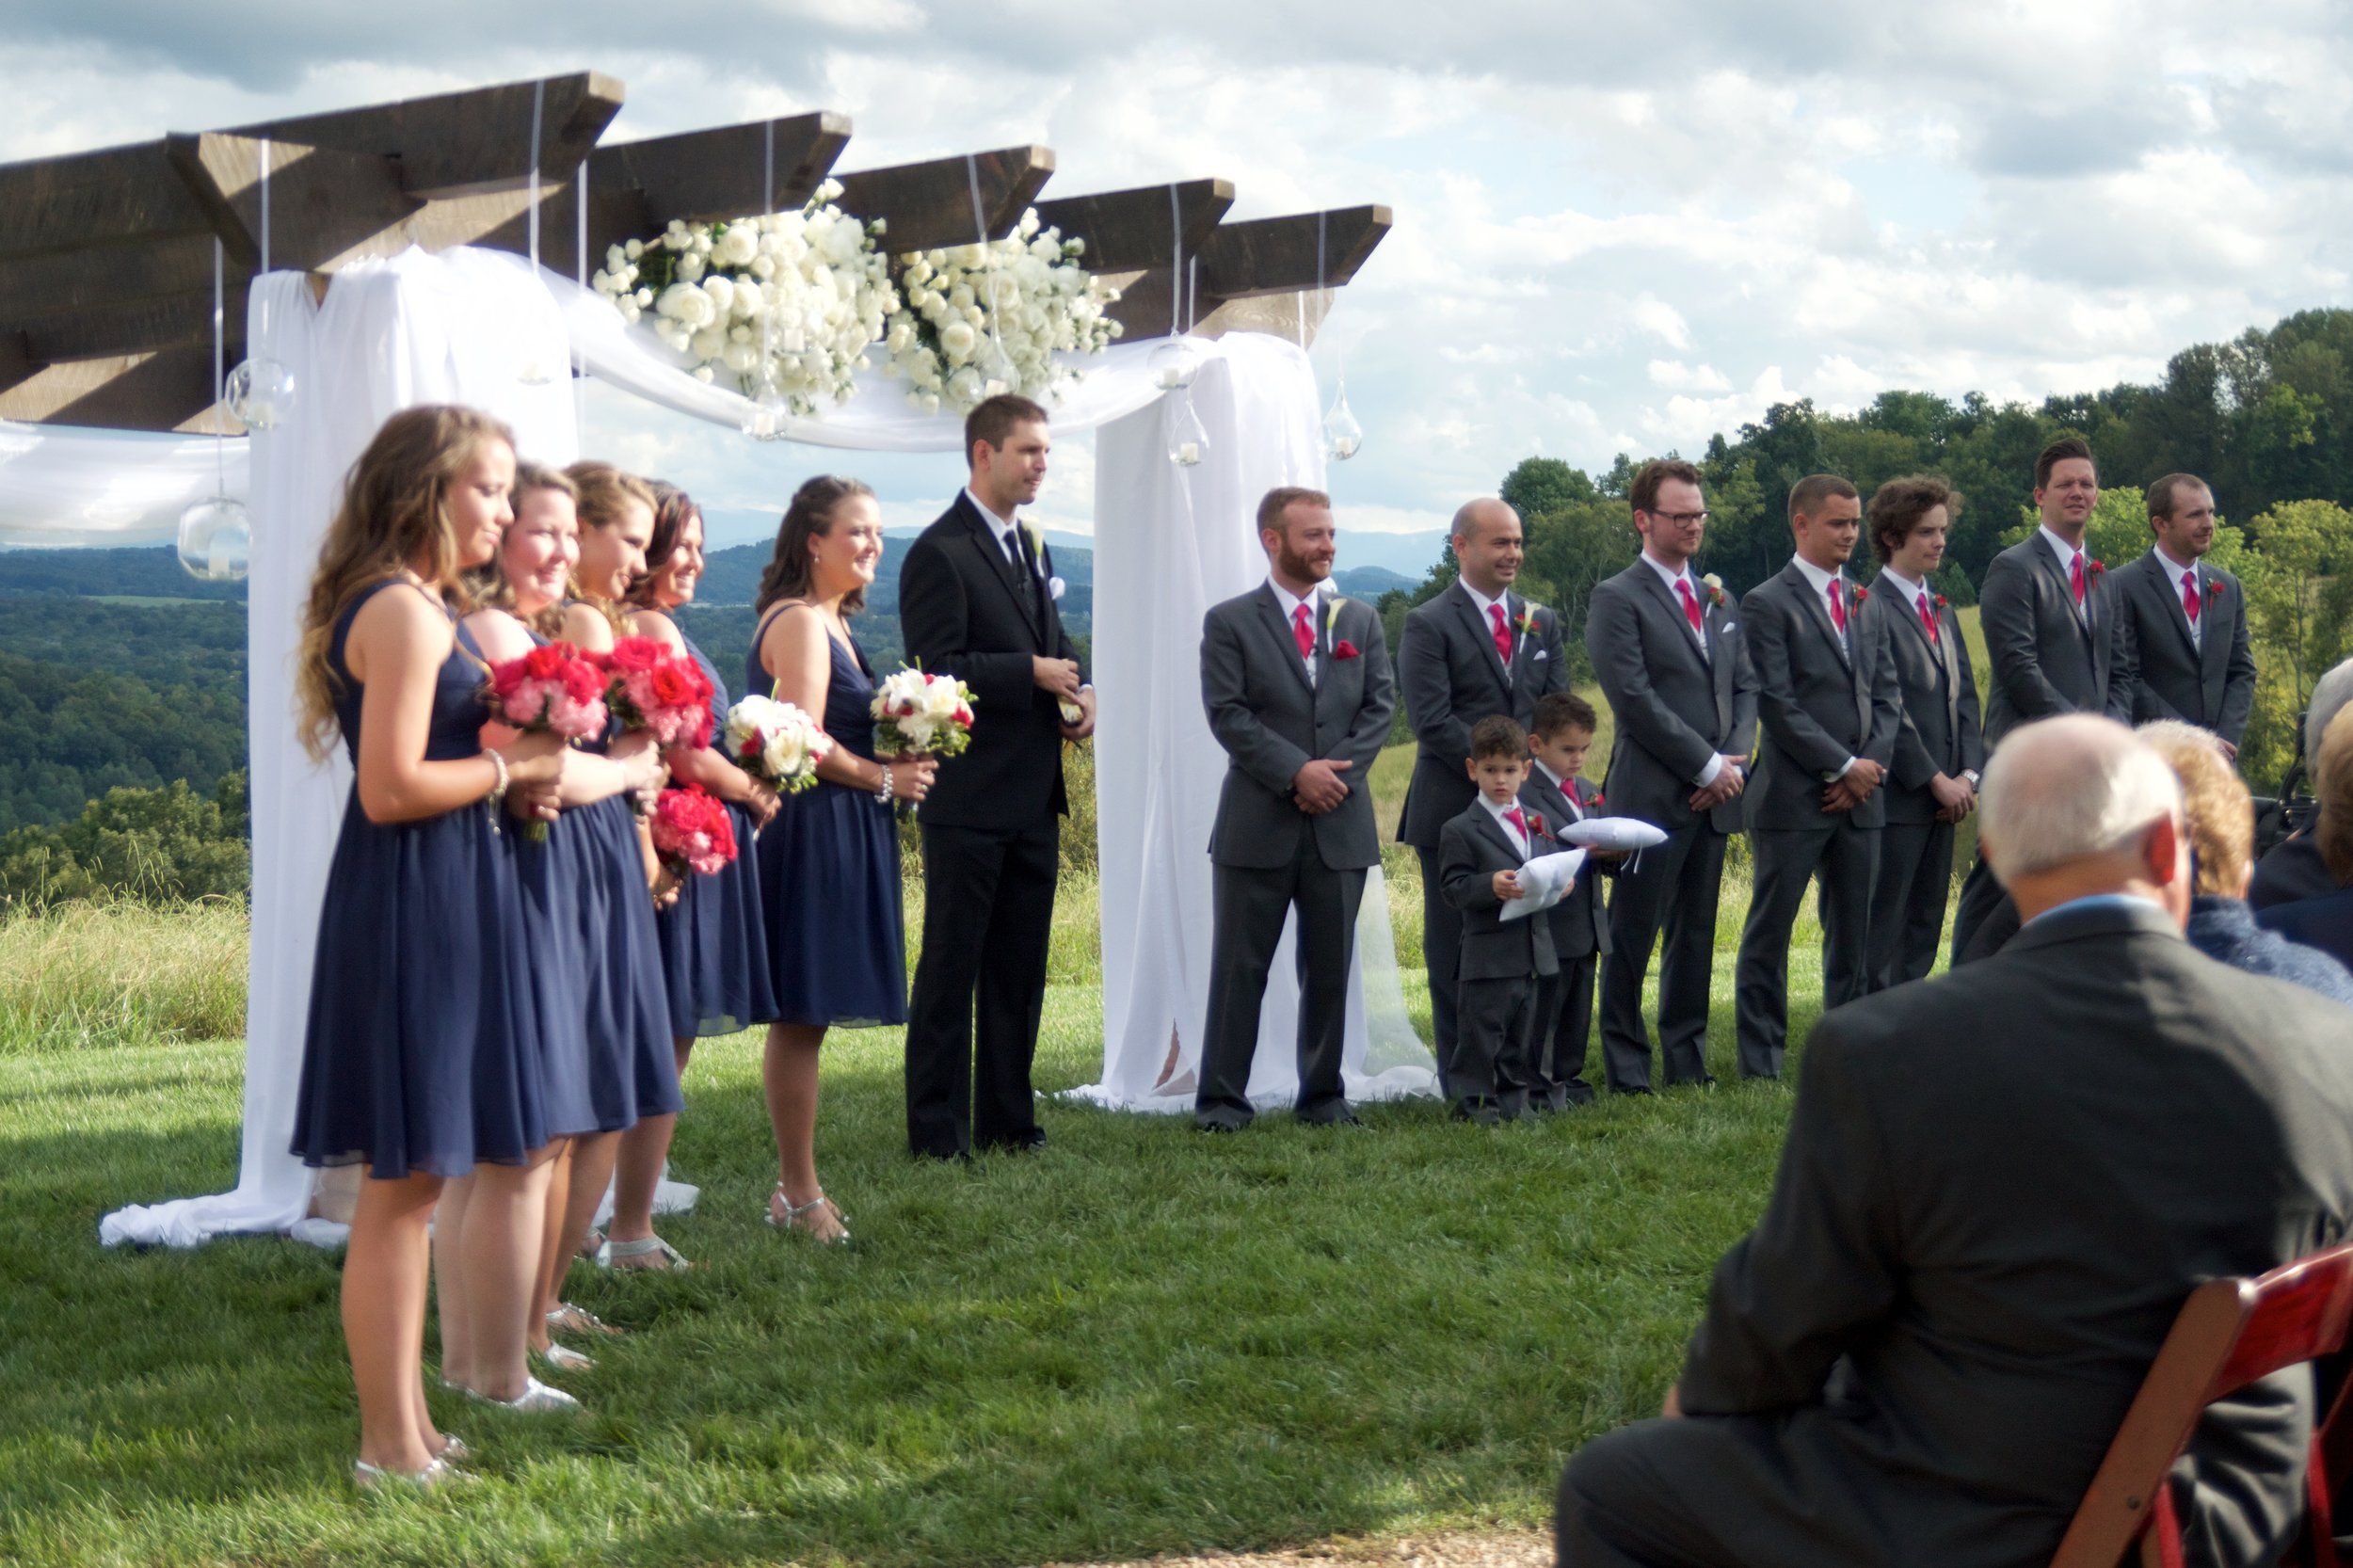 Getting the bridesmaids and groomsmen perfectly placed takes work too.